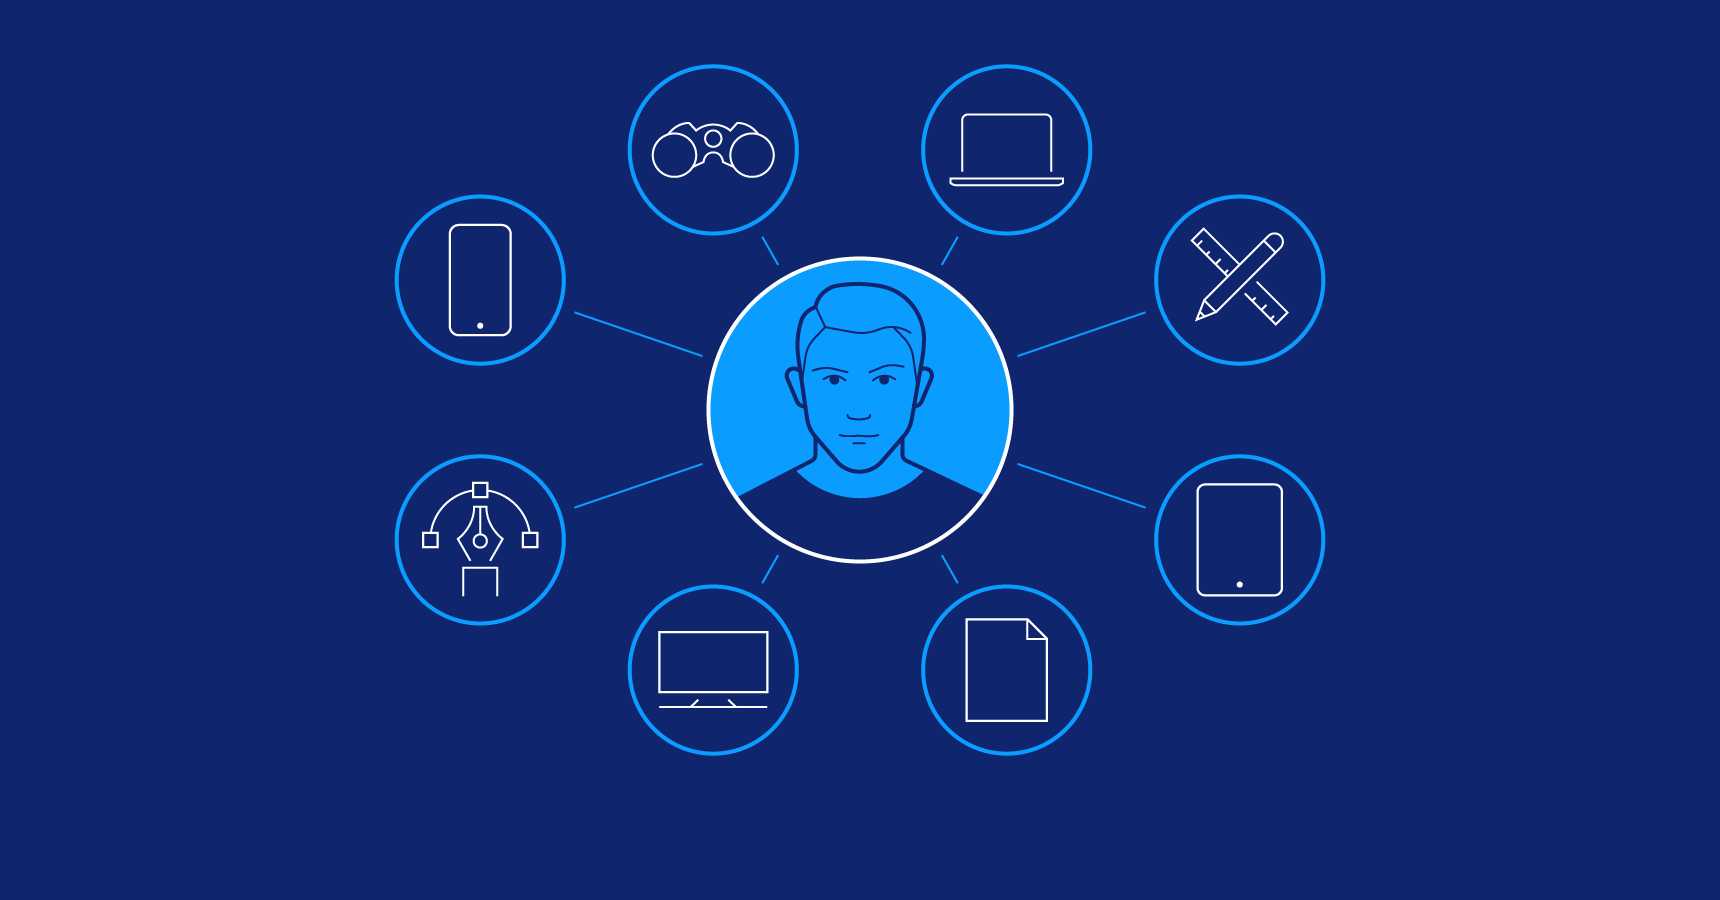 Human Centered Design In Product Design Toptal